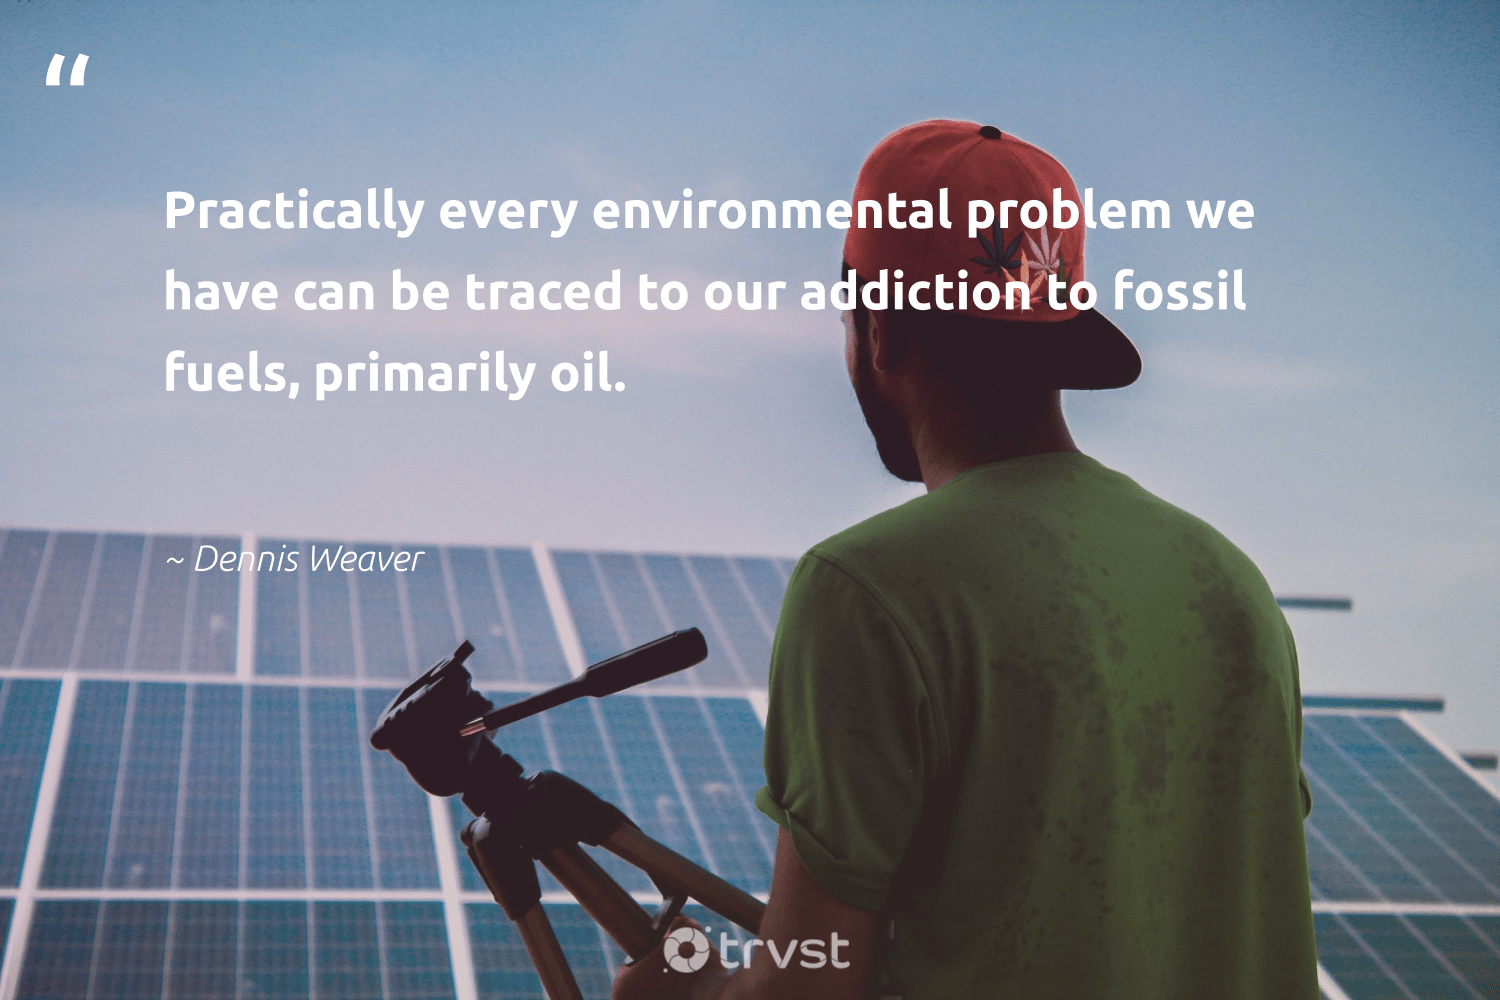 """""""Practically every environmental problem we have can be traced to our addiction to fossil fuels, primarily oil.""""  - Dennis Weaver #trvst #quotes #fossilfuels #environmental #oil #fossil #oilspill #gas #livegreen #carbon #thinkgreen #oilslick"""